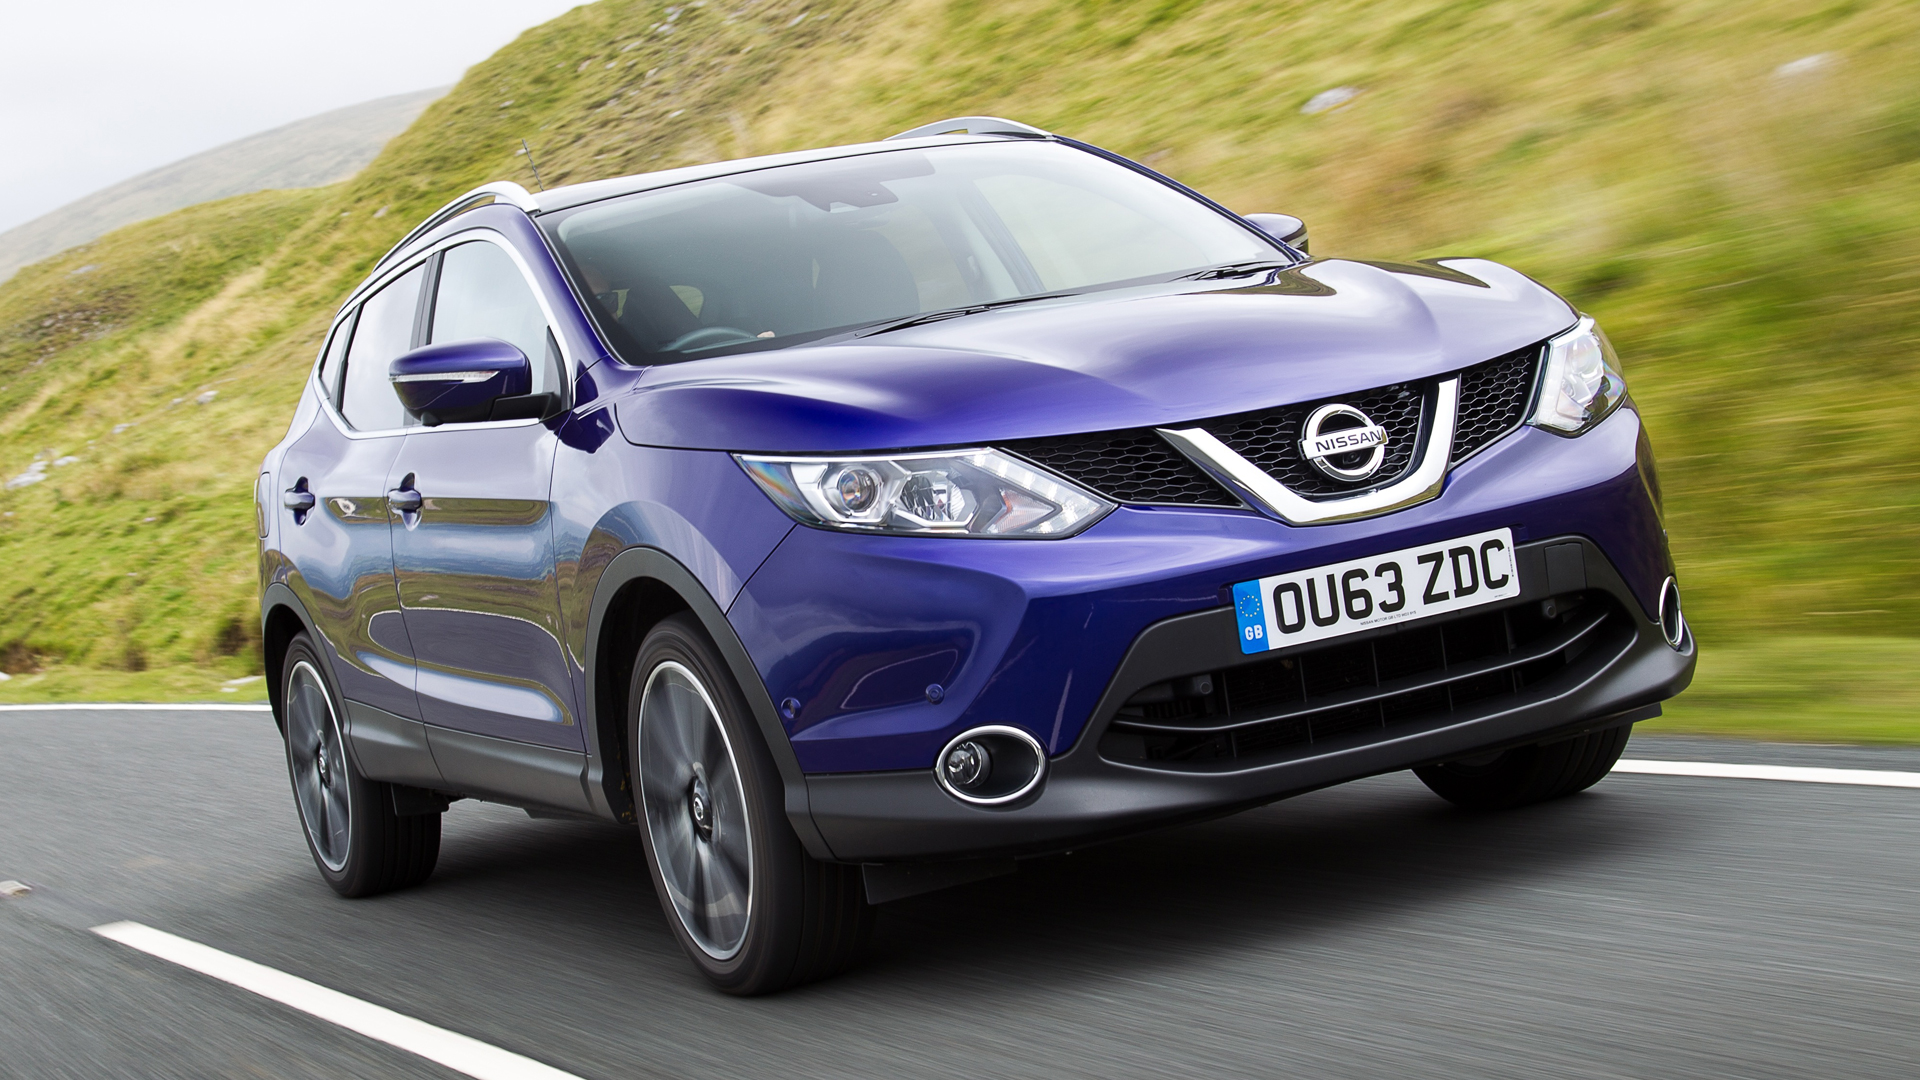 nissan qashqai hatchback 2013 review auto trader uk. Black Bedroom Furniture Sets. Home Design Ideas